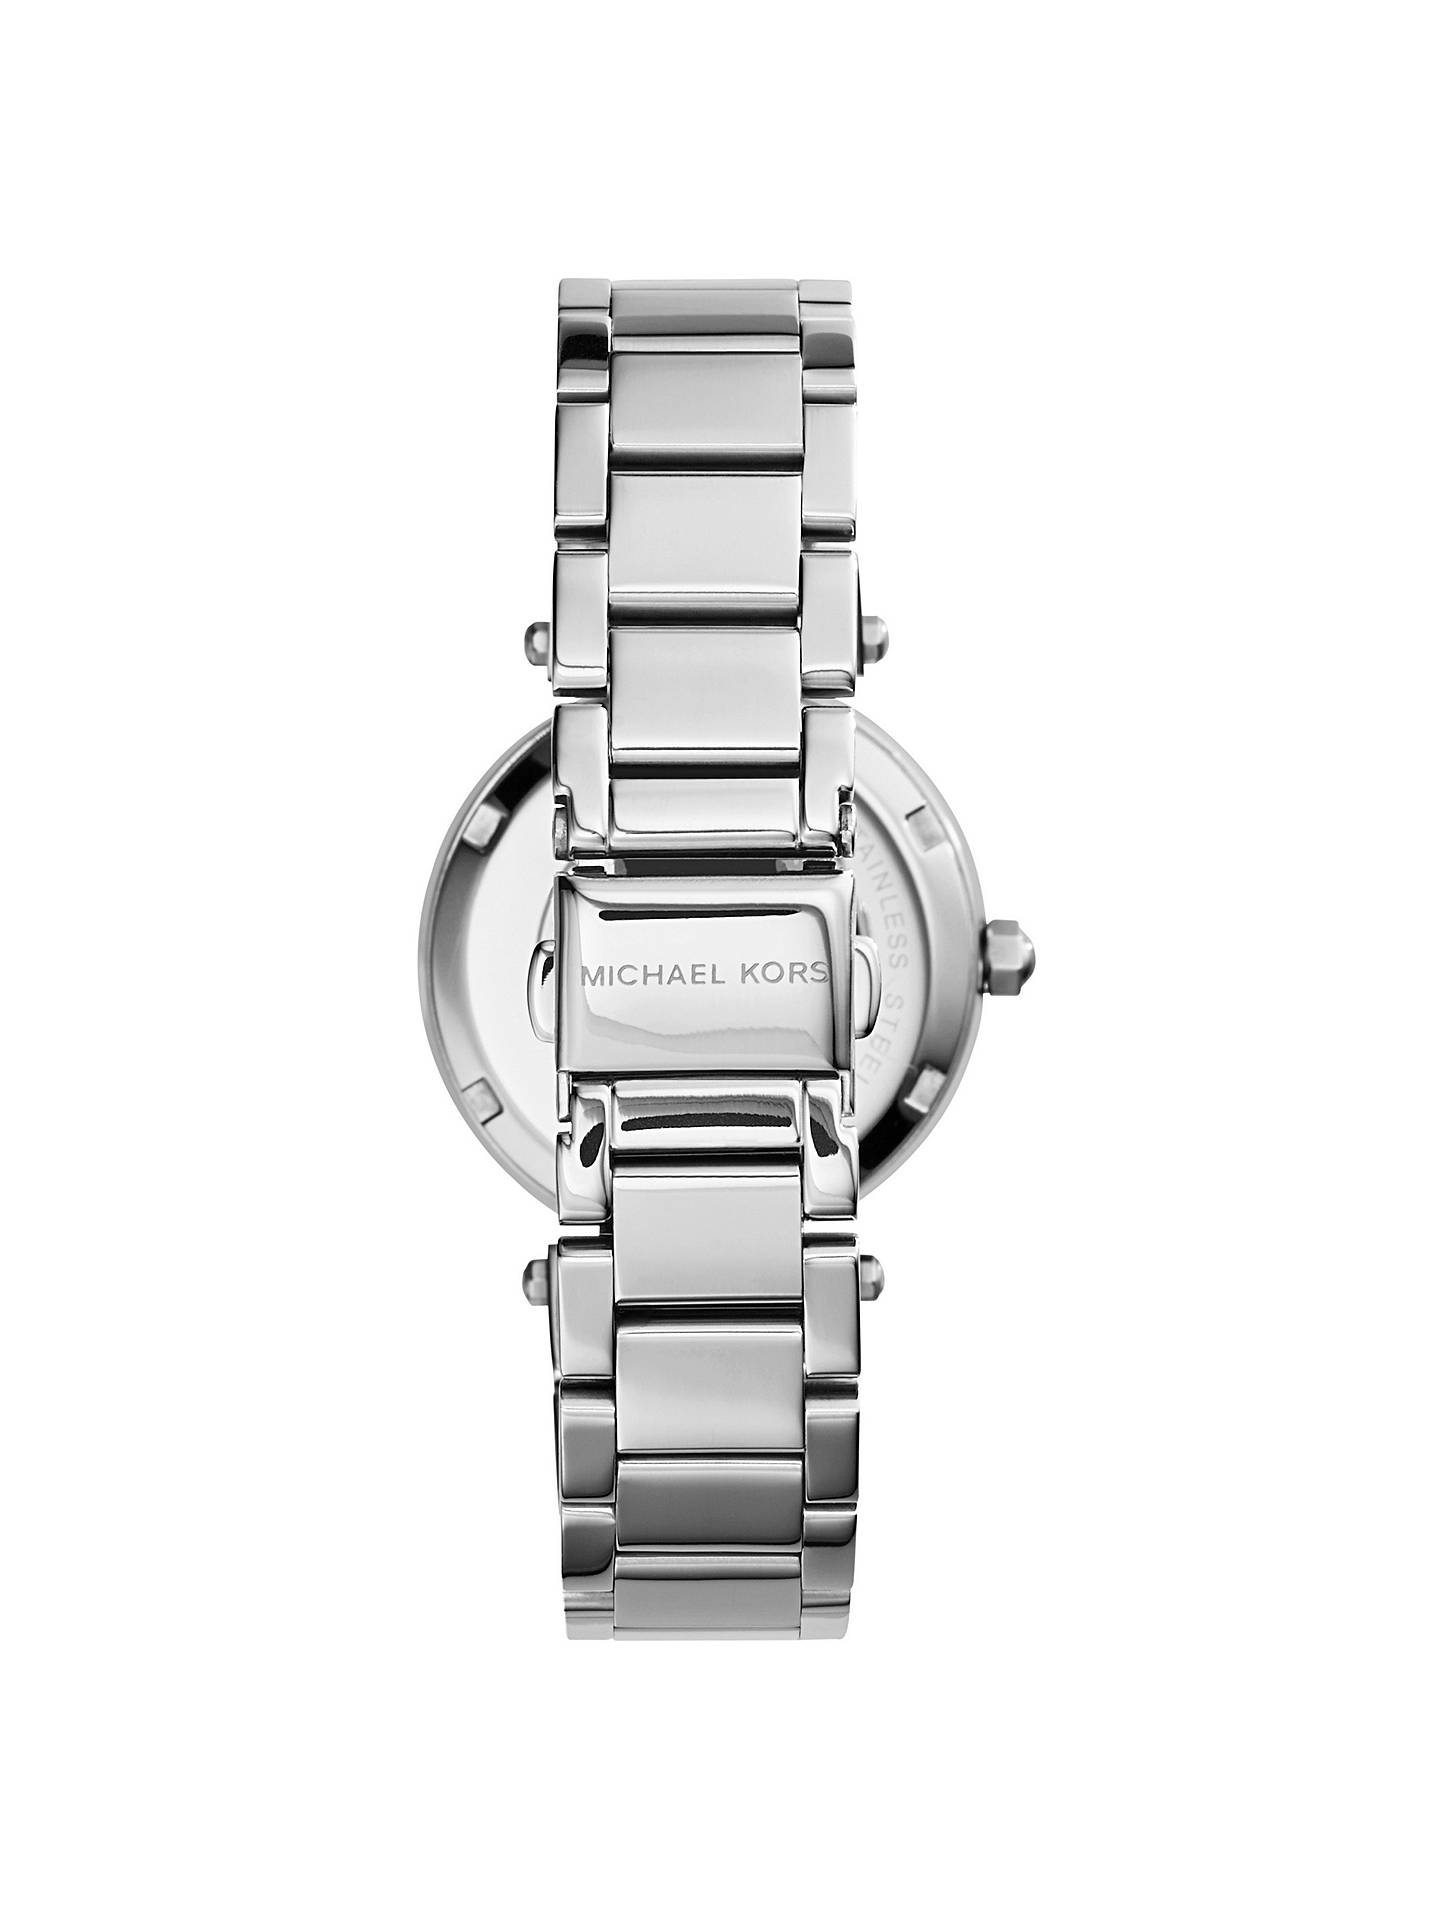 BuyMichael Kors MK5615 Mini Chronograph Bracelet Strap Watch, Silver Online at johnlewis.com